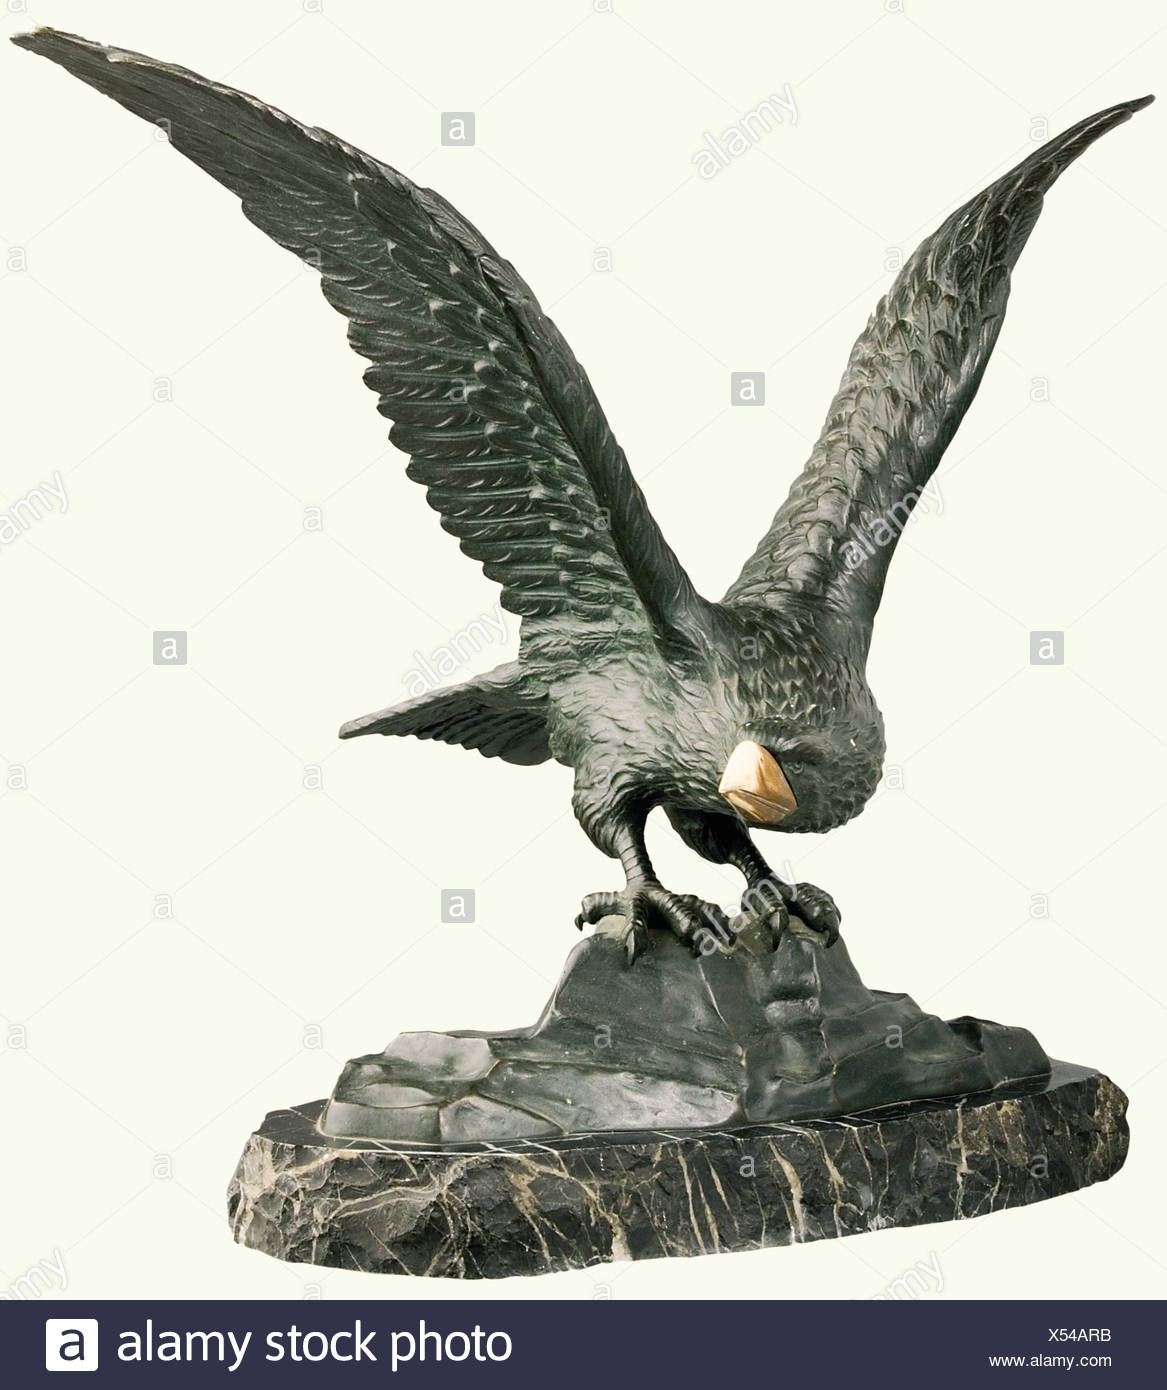 Rising eagle, a bronze figure, German, 19th century. With an inset ivory beak. The eagle is shown seated on a cliff, spreading its wings. Irregular shaped black marble plinth signed on one side 'R. Koch'. Height 44 cm. fine arts, 19th century, fine arts, art, statuette, figurine, figurines, statuettes, sculpture, sculptures, object, objects, stills, clipping, clippings, cut out, cut-out, cut-outs, Artist's Copyright has not to be cleared - Stock Image